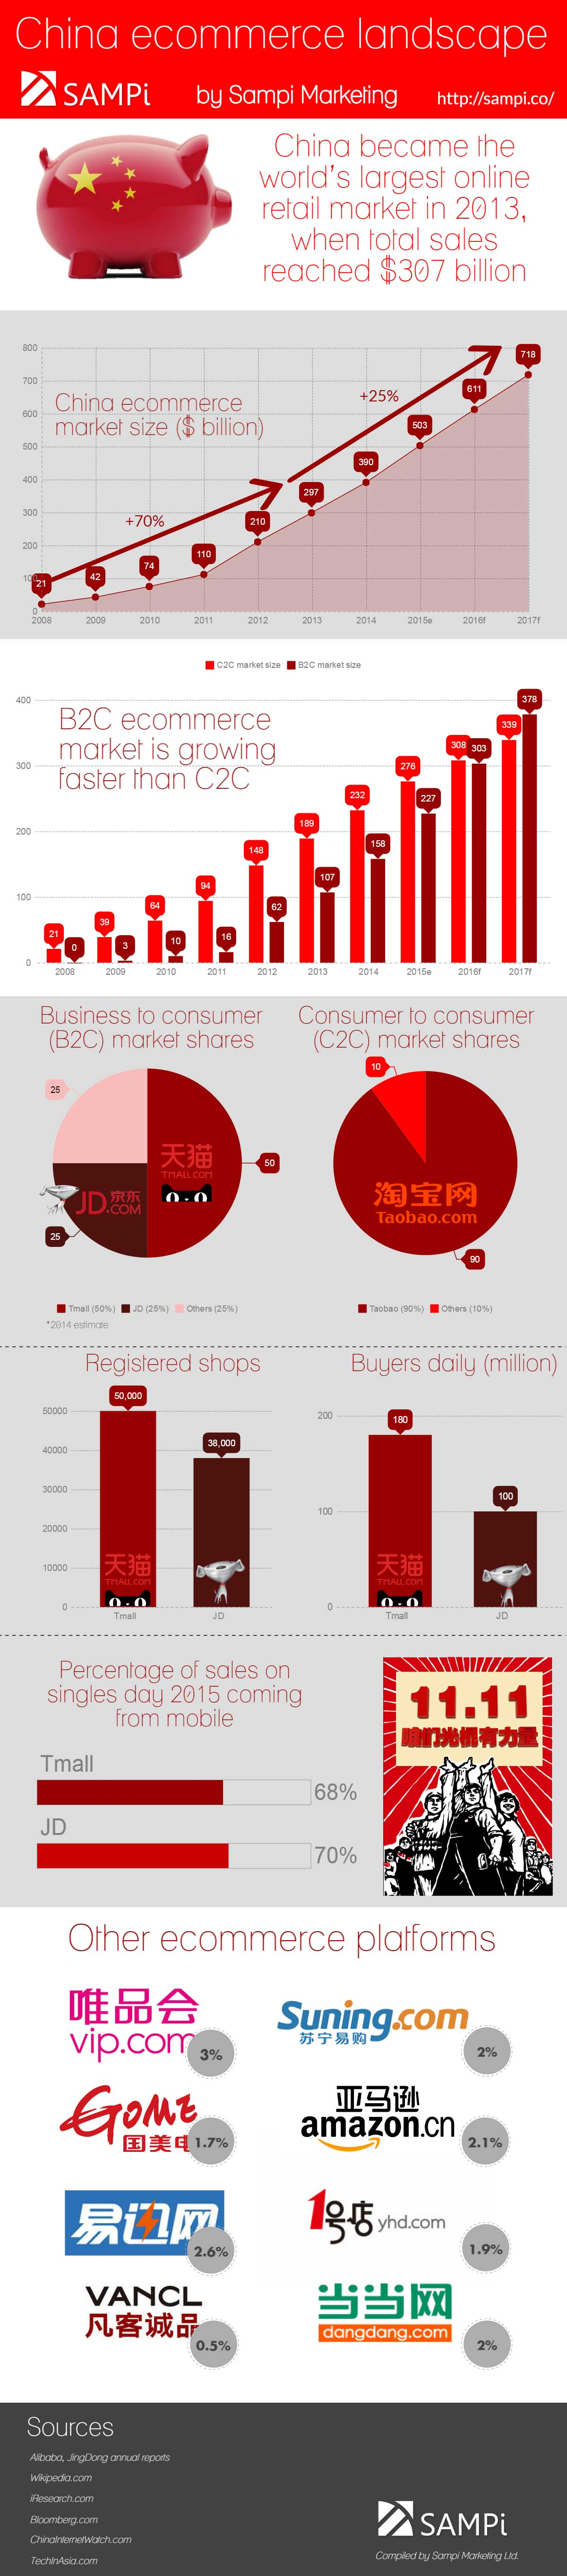 China ecommerce landscape Sampi Marketing